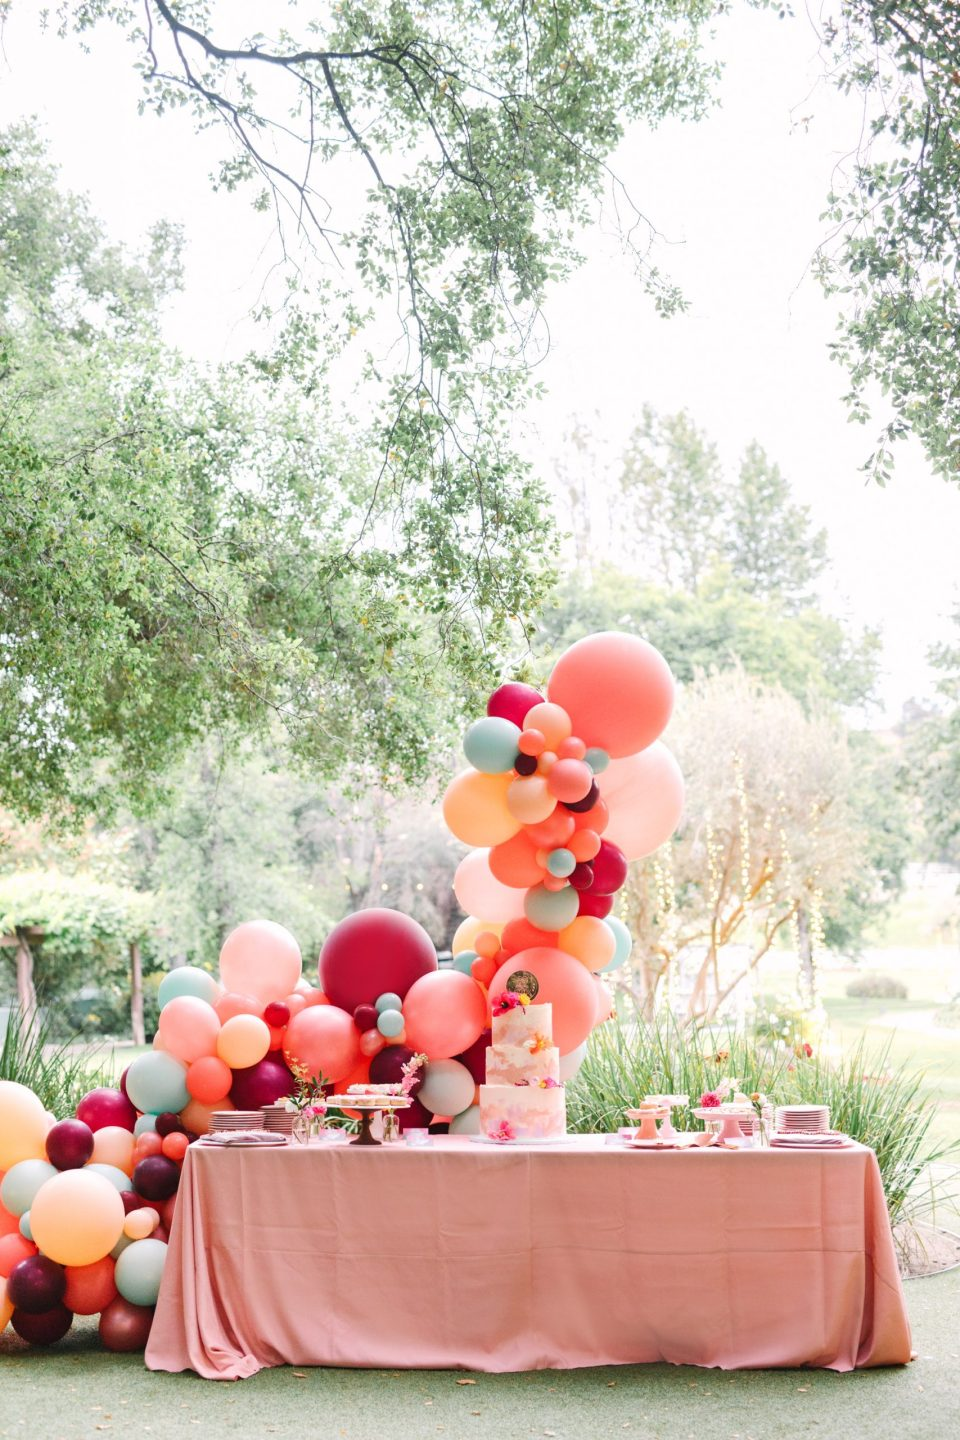 Balloon arch display by Mary Costa Photography